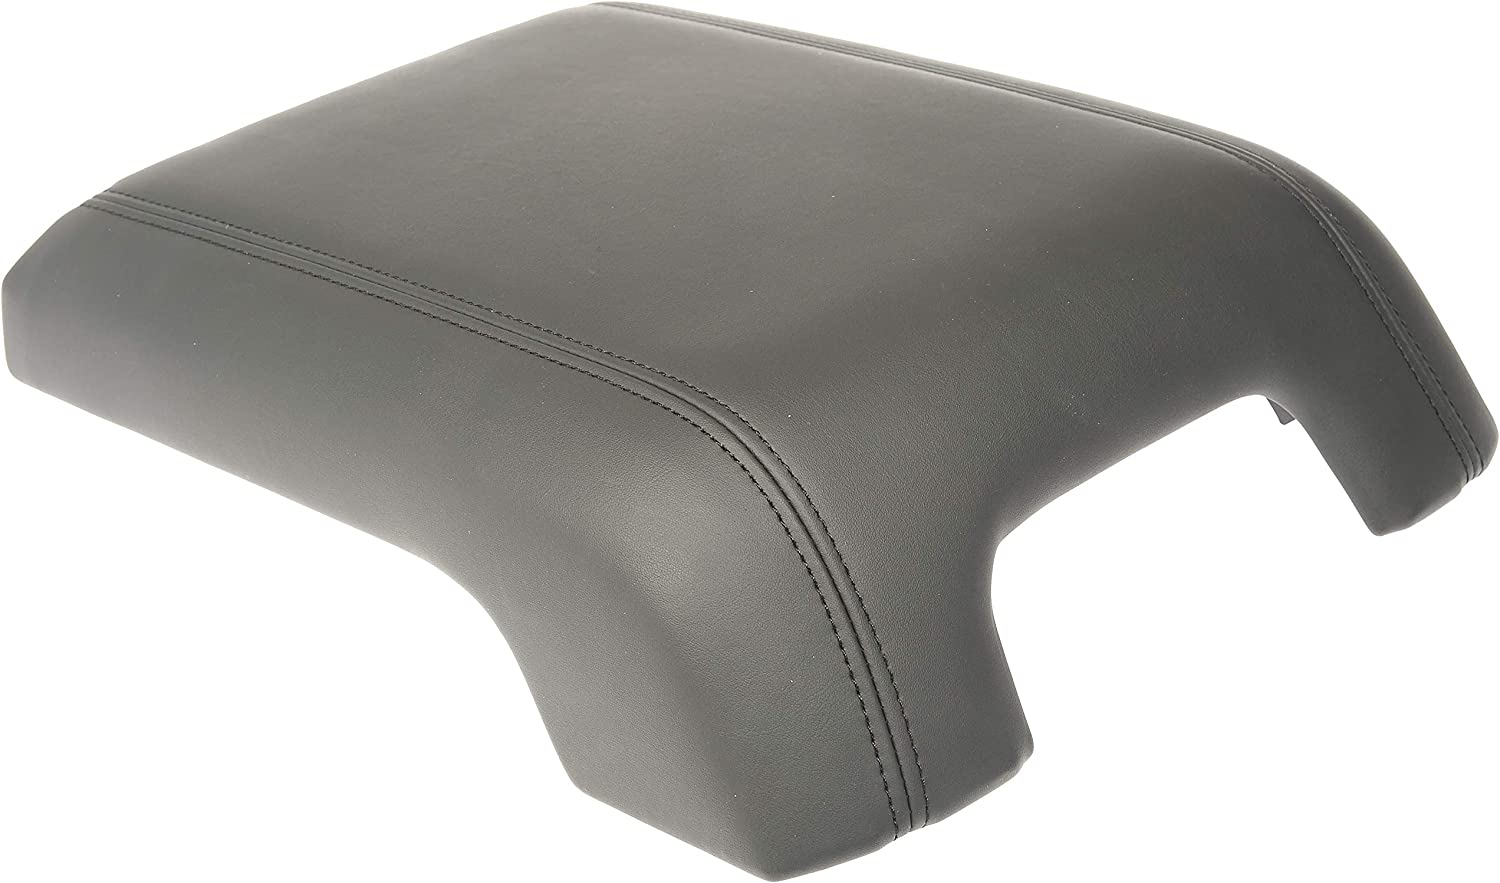 Mitsubishi Models Dorman 925-600 Console Lid Base Replacement for Select Dodge